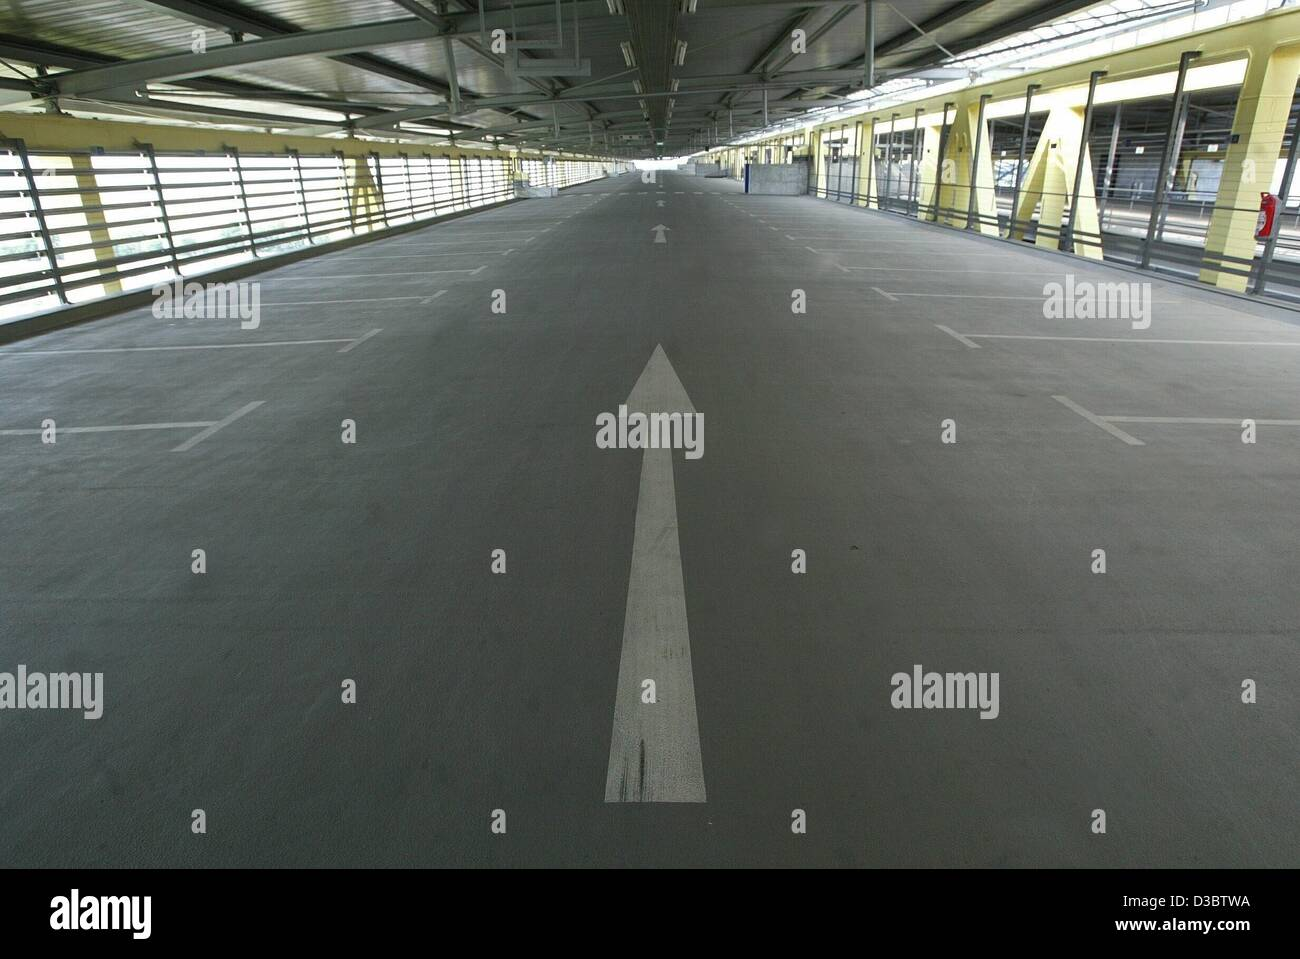 (dpa) - An arrow indicates the direction in an empty storey of a car park at the airport Leipzig/Halle in Schkeuditz, Stock Photo